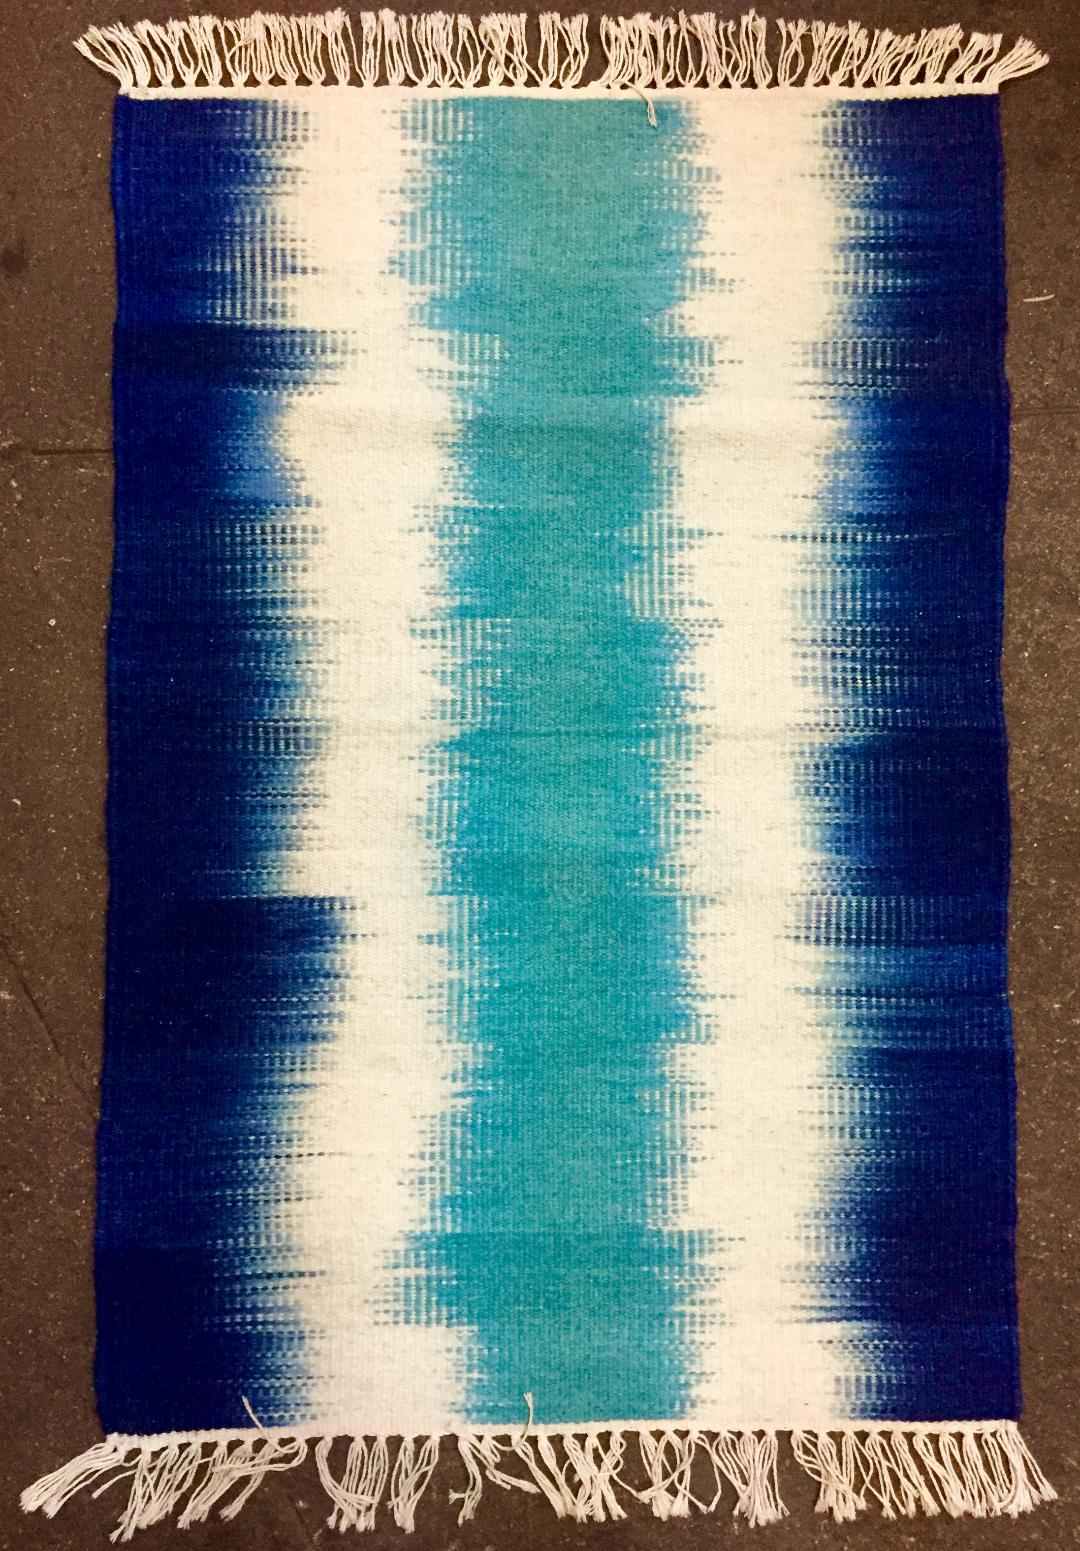 Blue, White Ikat 1698-0 Handwoven rug.  Save 50% with code SAVE50 at checkout